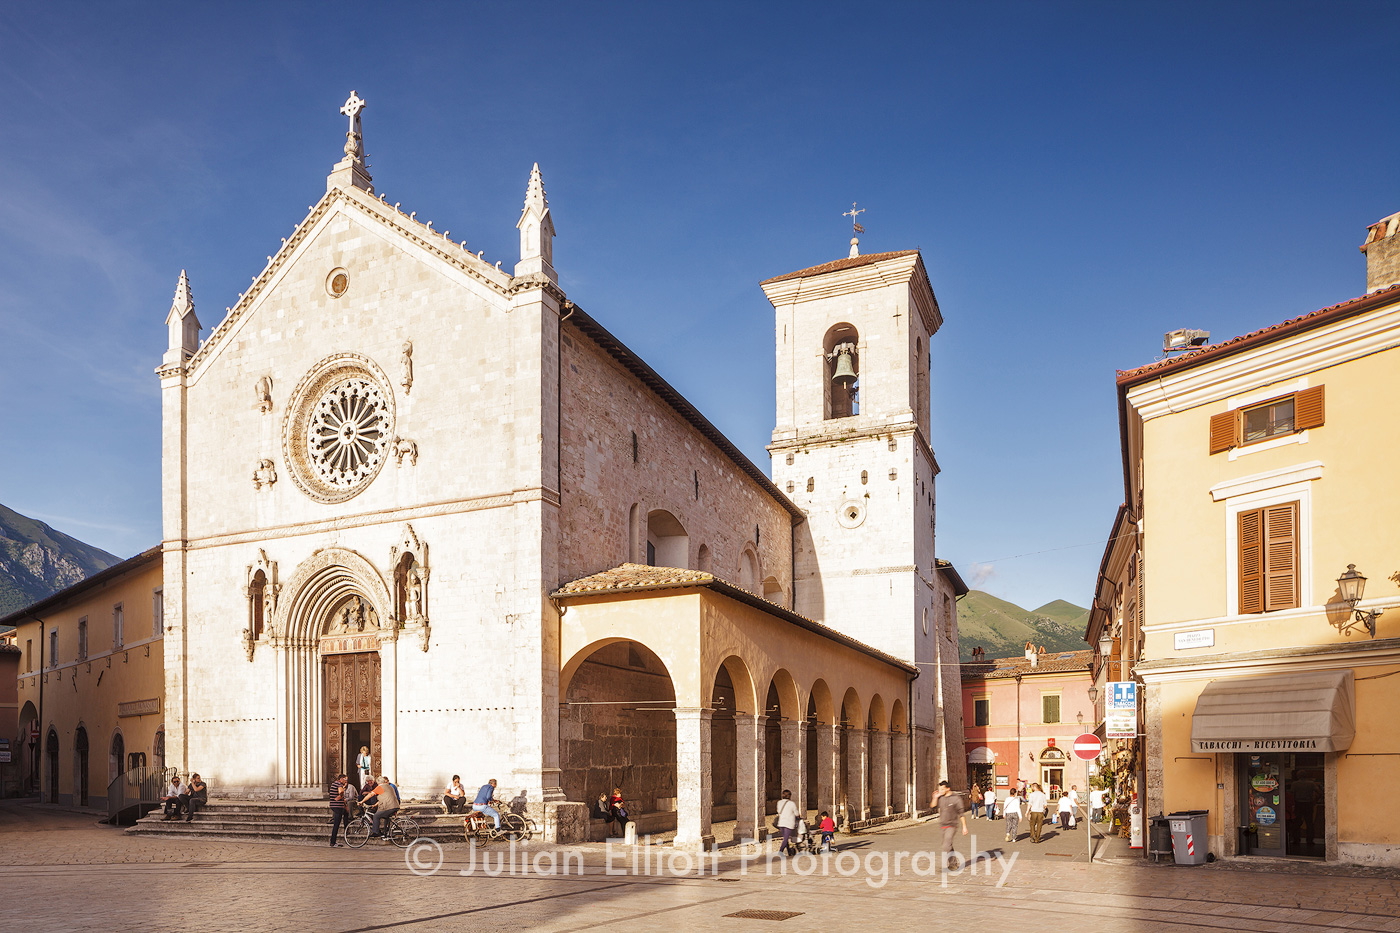 San Benedict in Piazza San Benedetto.